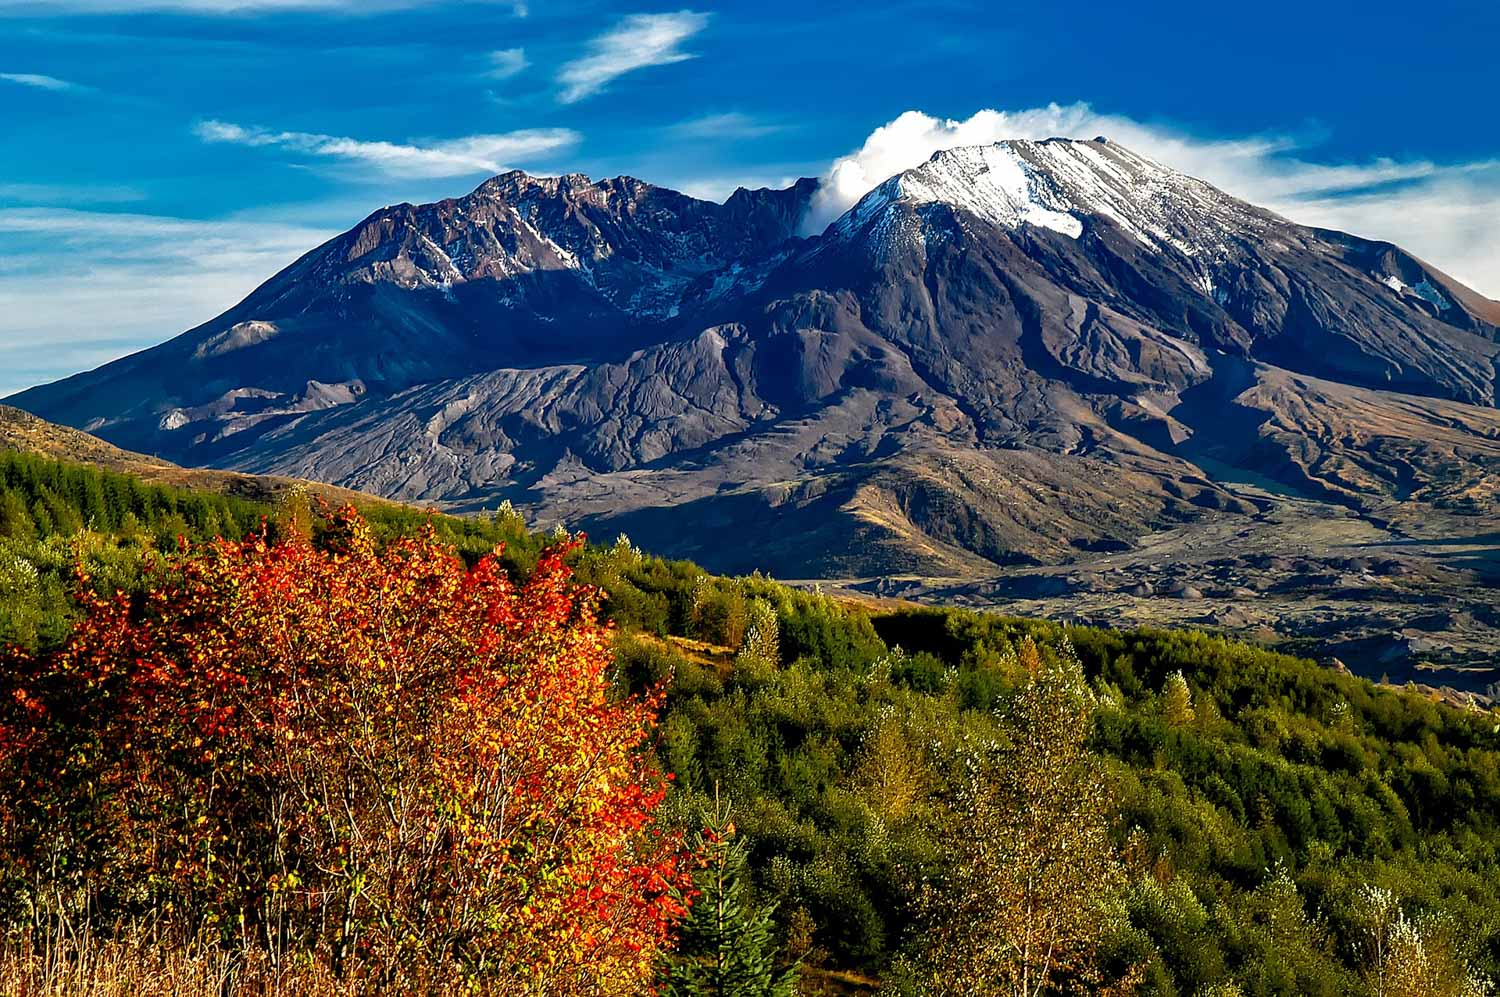 Mount St. Helens, Washington - Loowit Trail Guide